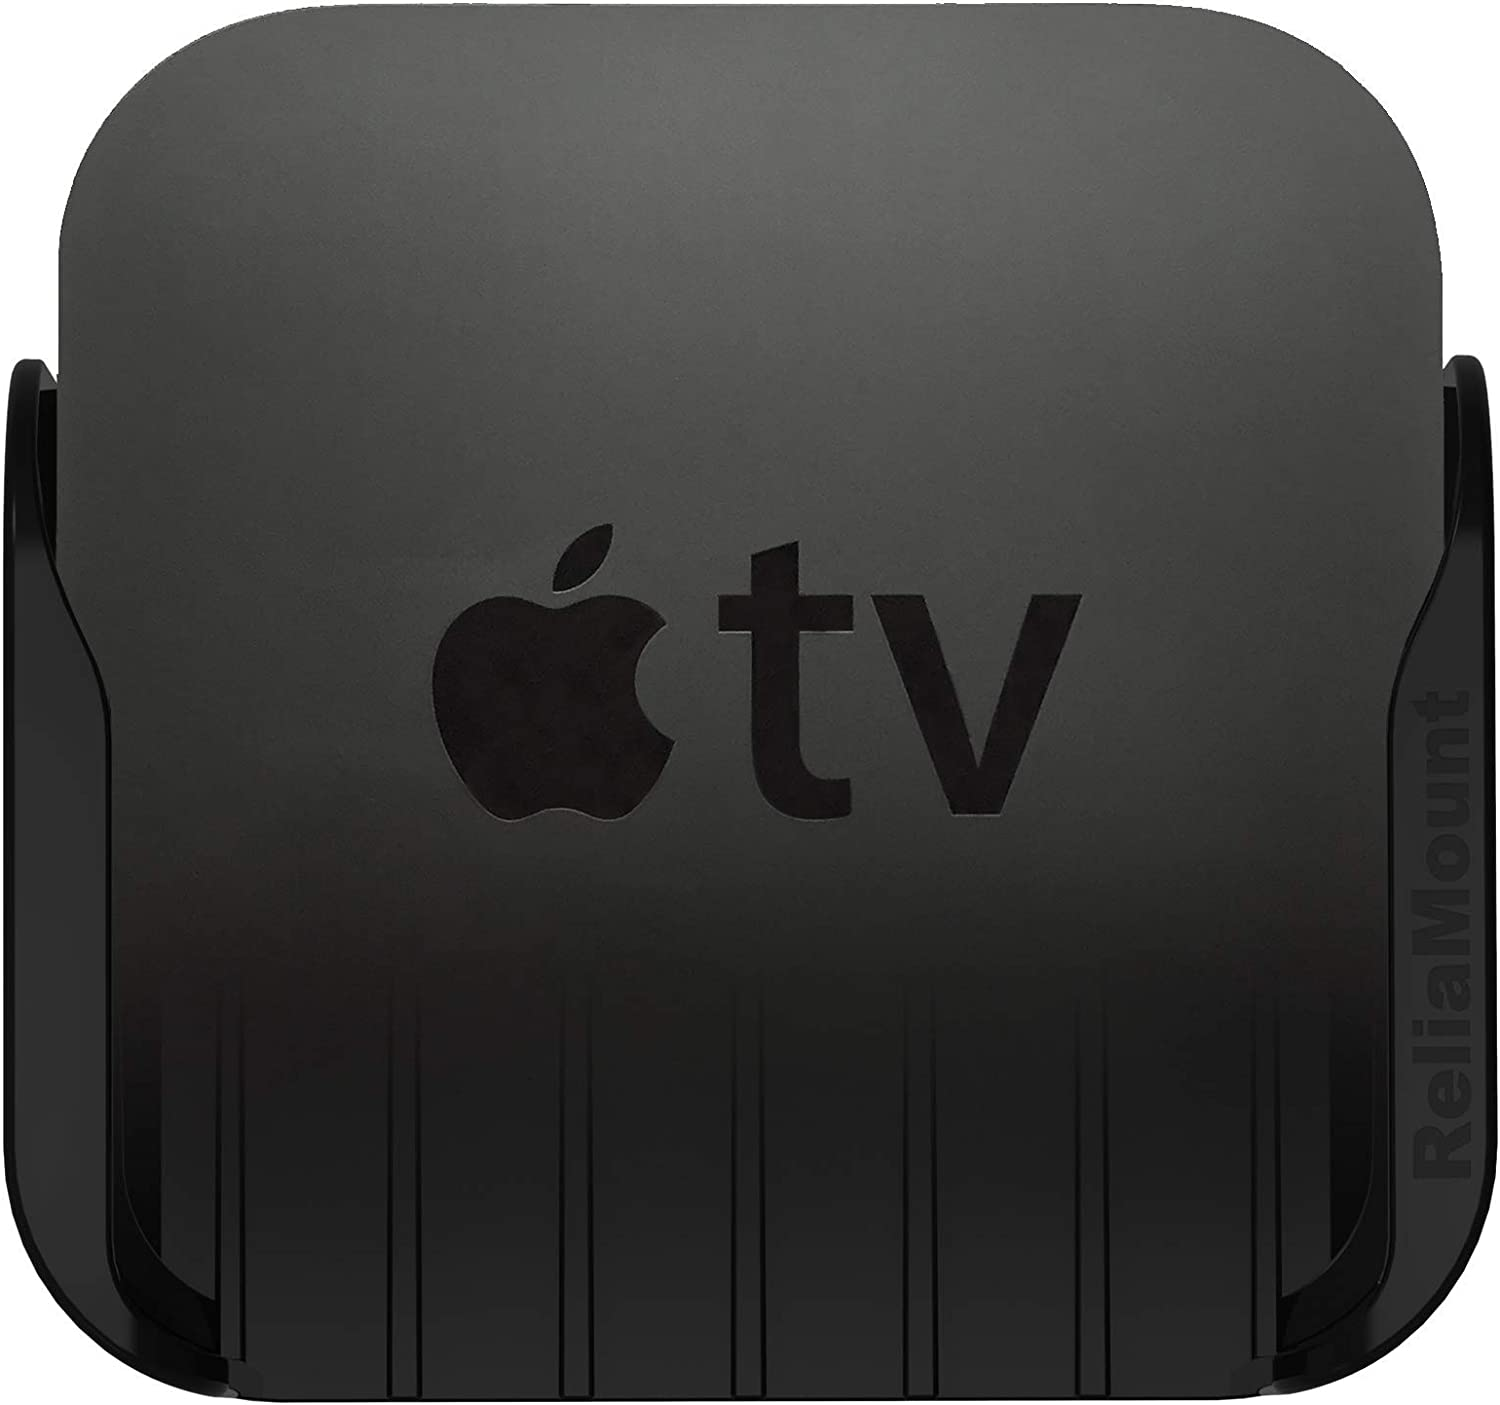 ReliaMount Apple TV Mount (Compatible with Apple TV 4K and Apple TV HD)